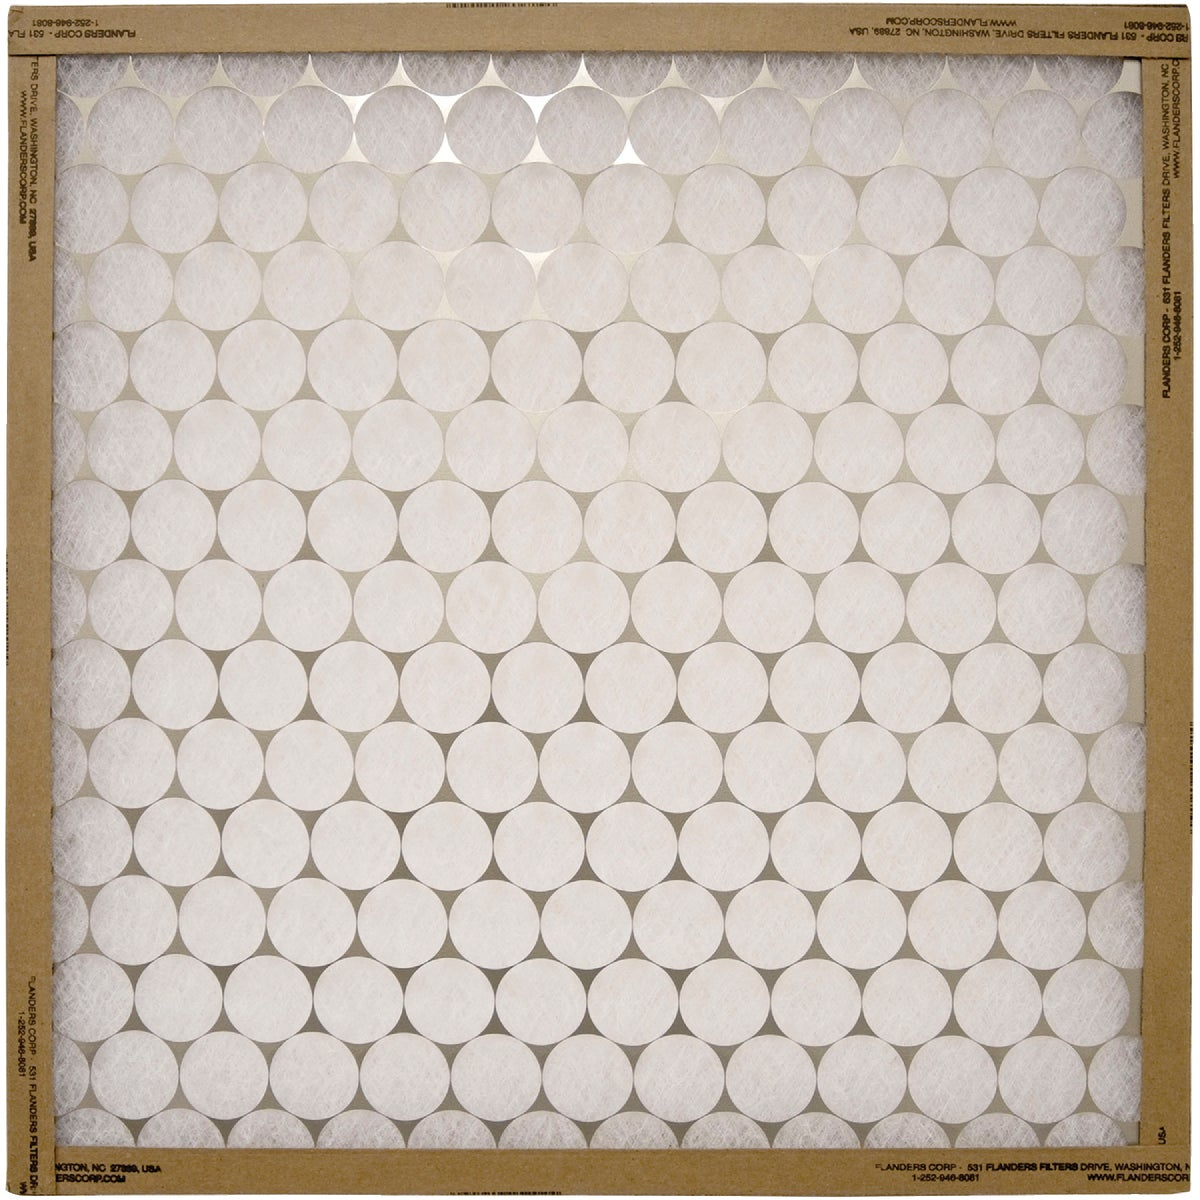 18X18 FURNACE FILTER - 10255.011818 by Flanders Corp